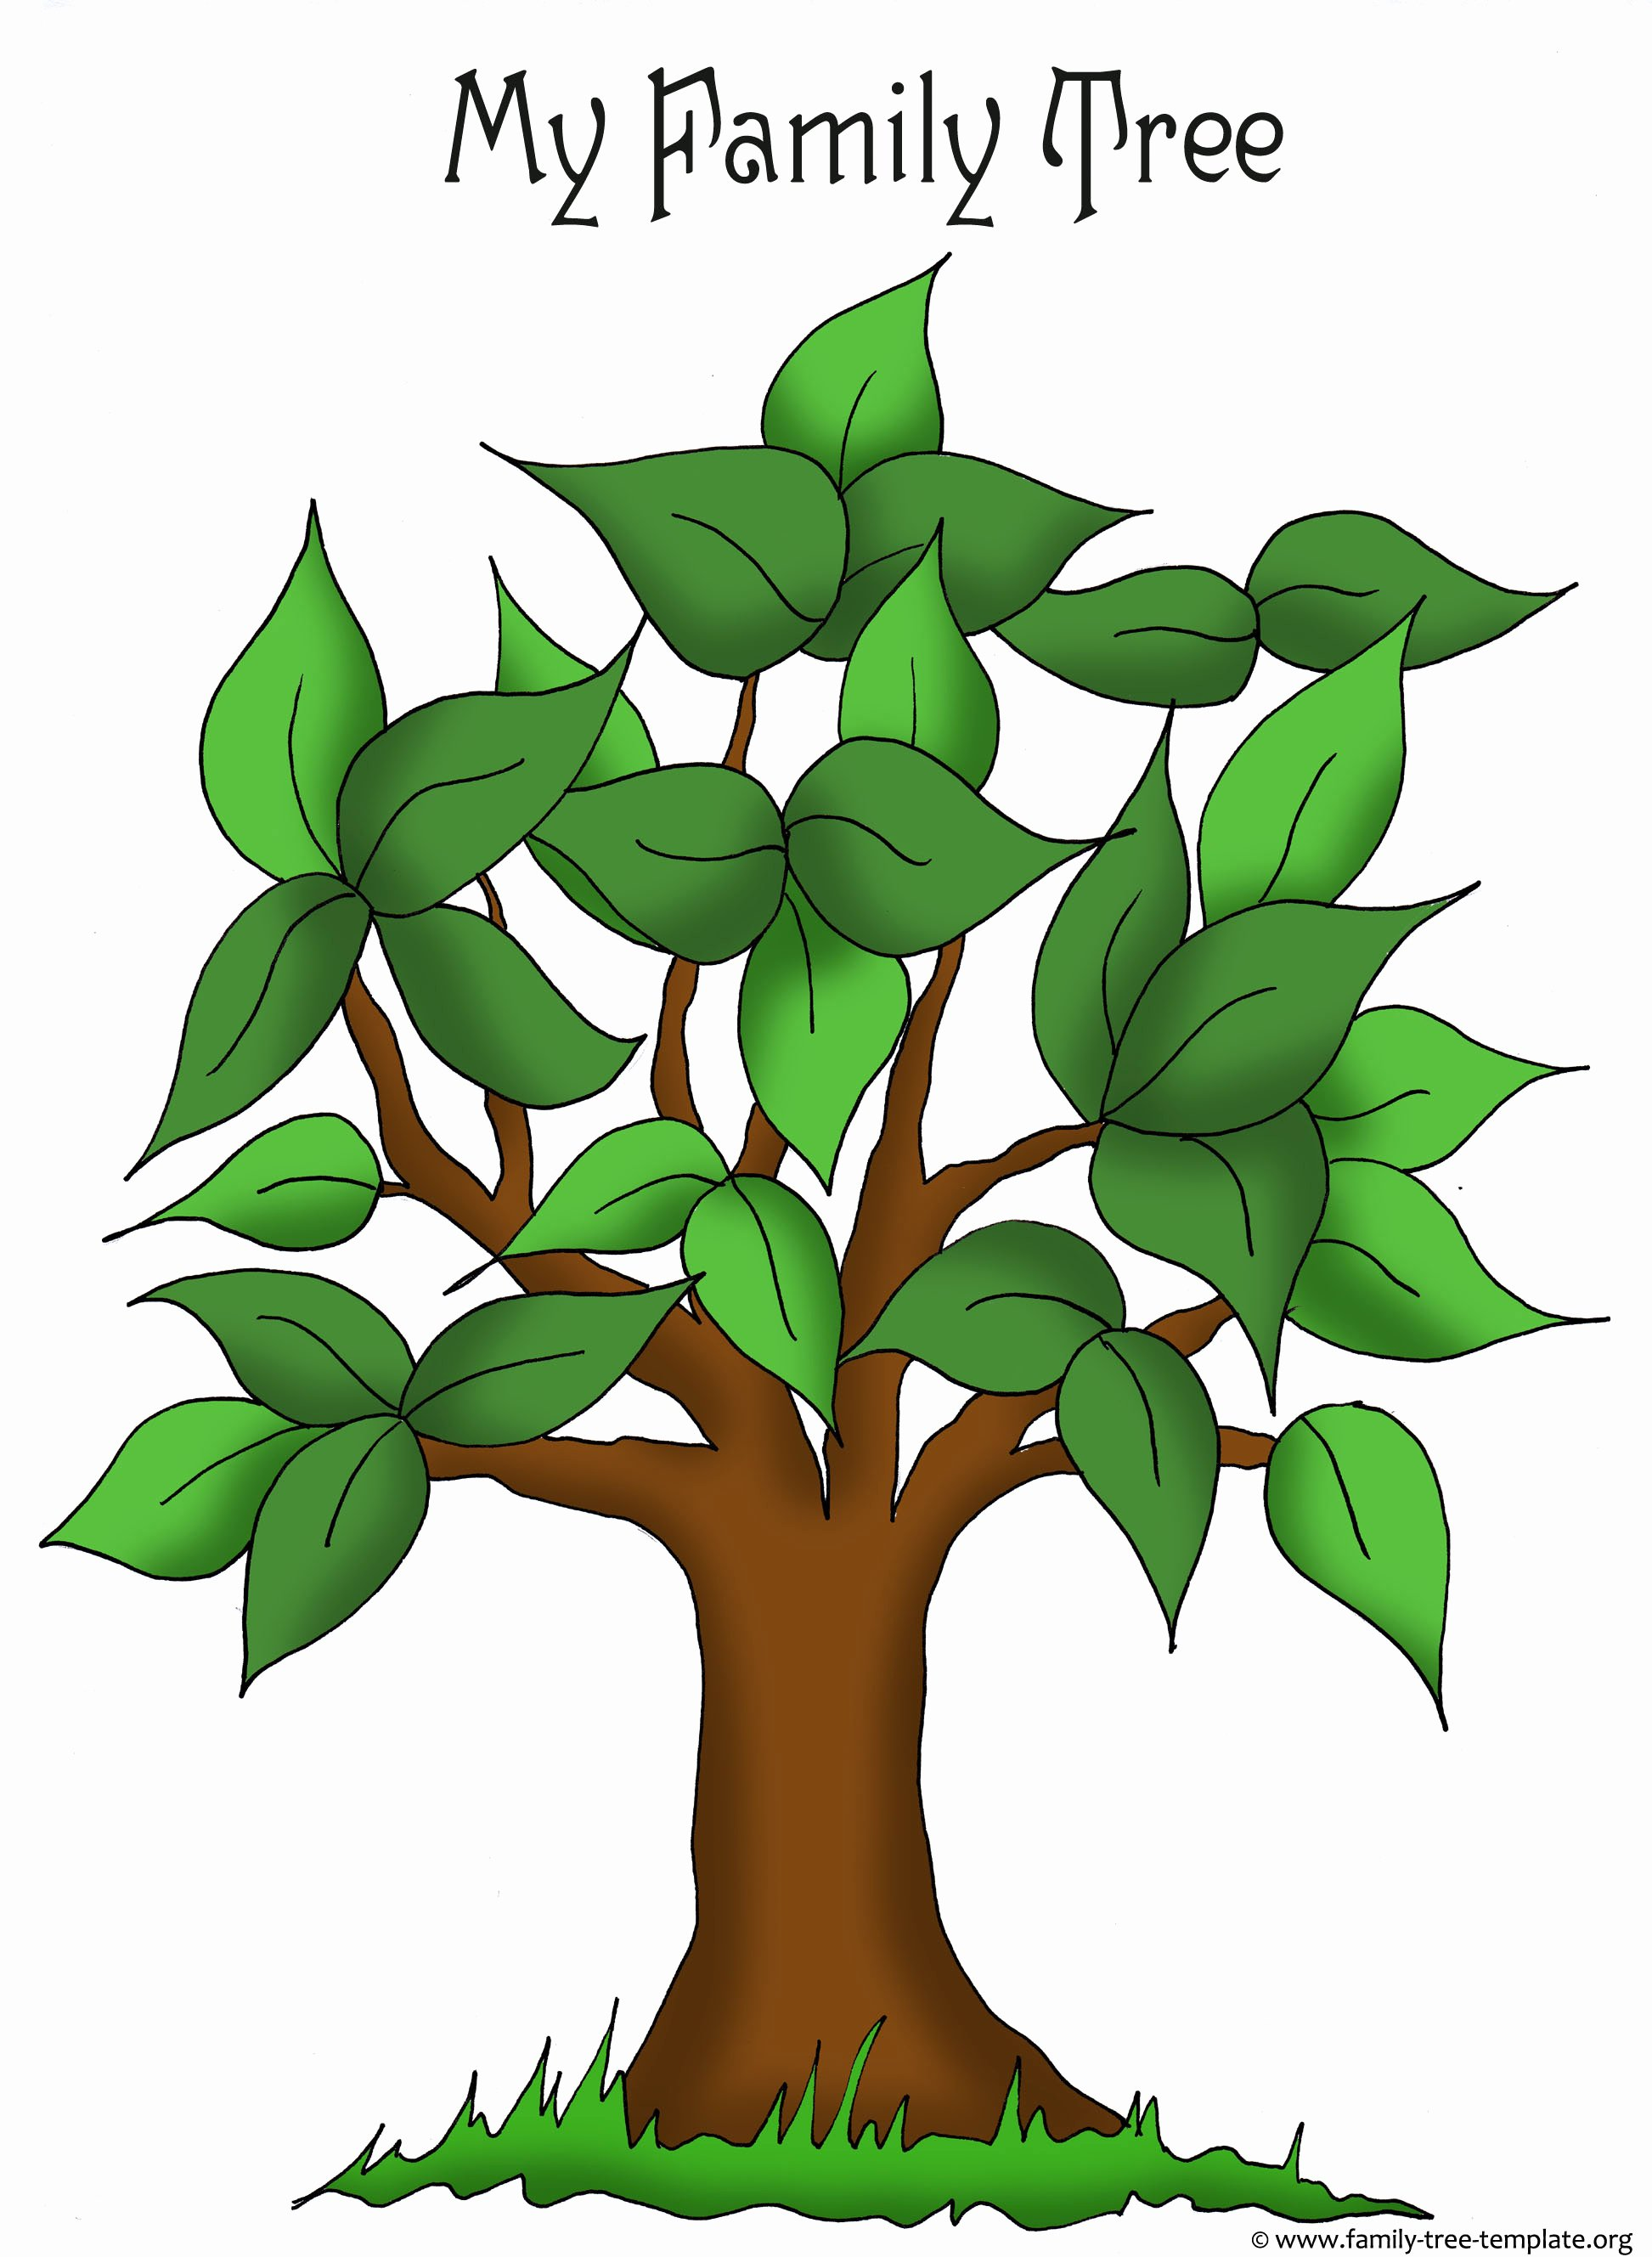 Family Tree Art Template Best Of Family Tree Templates & Genealogy Clipart for Your